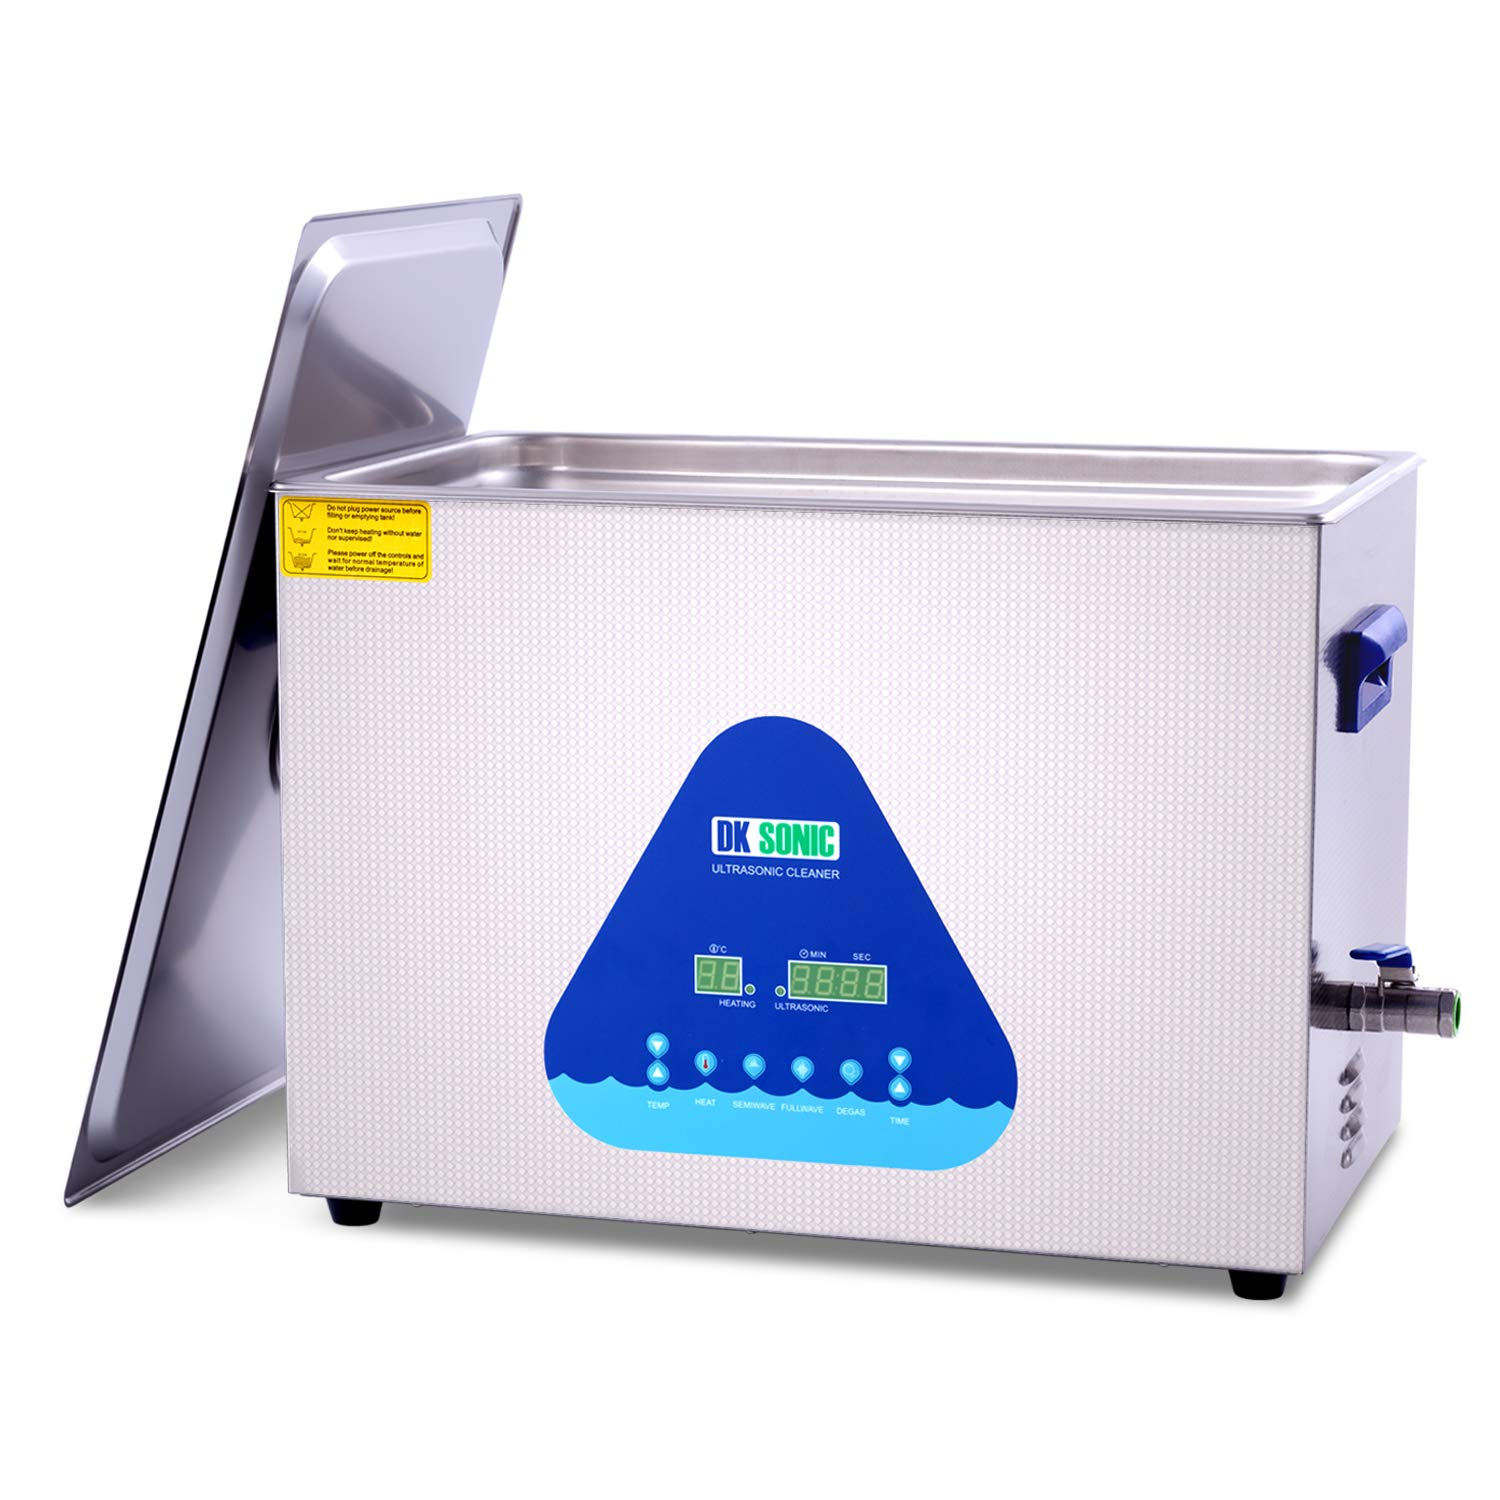 Large Professional Ultrasonic Cleaner - DK SONIC 30L 600W Sonic Cleaner with Heater and Basket for Metal Parts,Carburetor,Fuel Injector,Brass,Auto Parts,Engine Parts,Motor Repair Tools,etc by DK SONIC